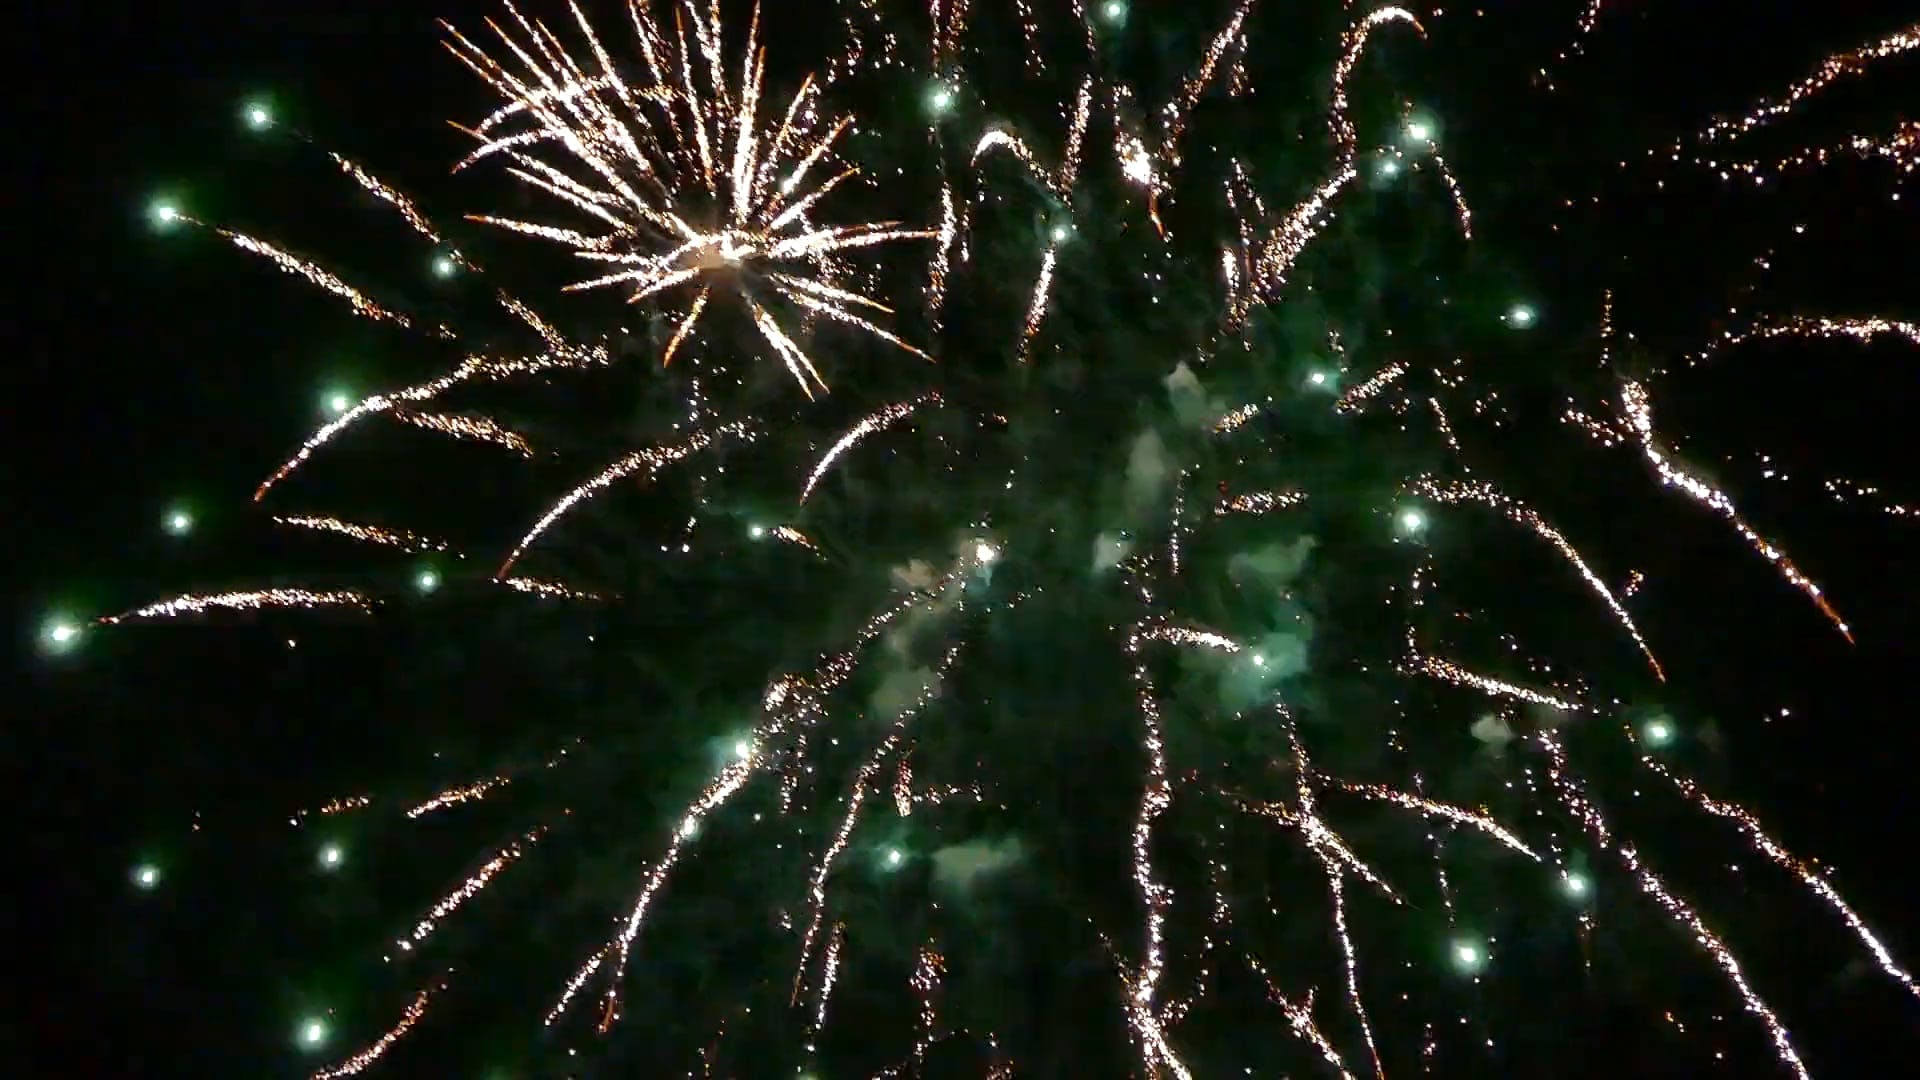 Video of Fireworks During Evening